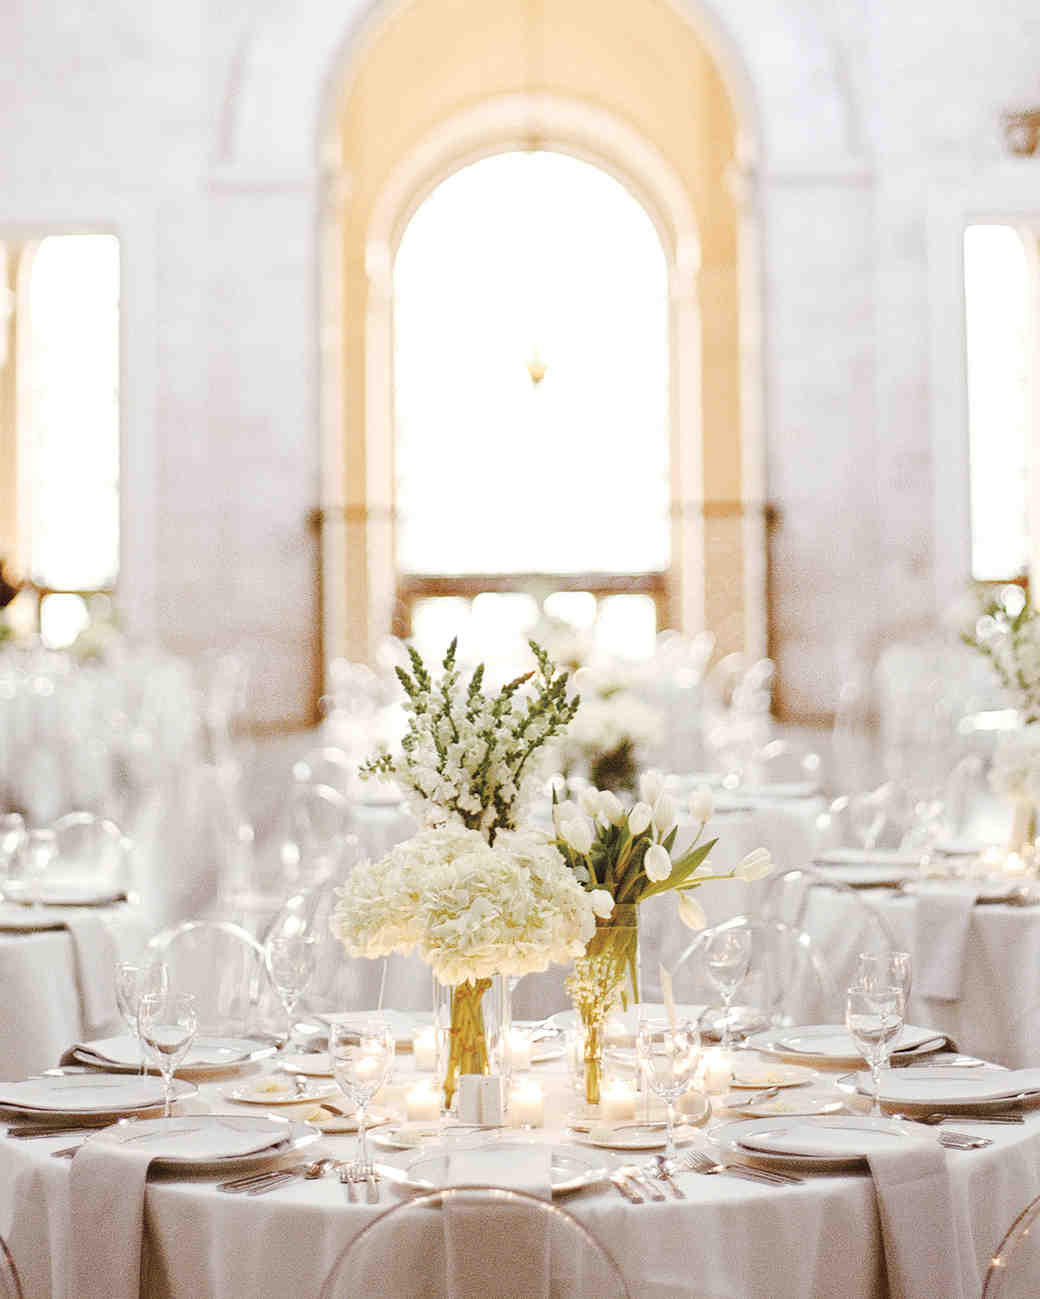 Affordable Wedding Centerpieces That Still Look Elevated | Martha ...